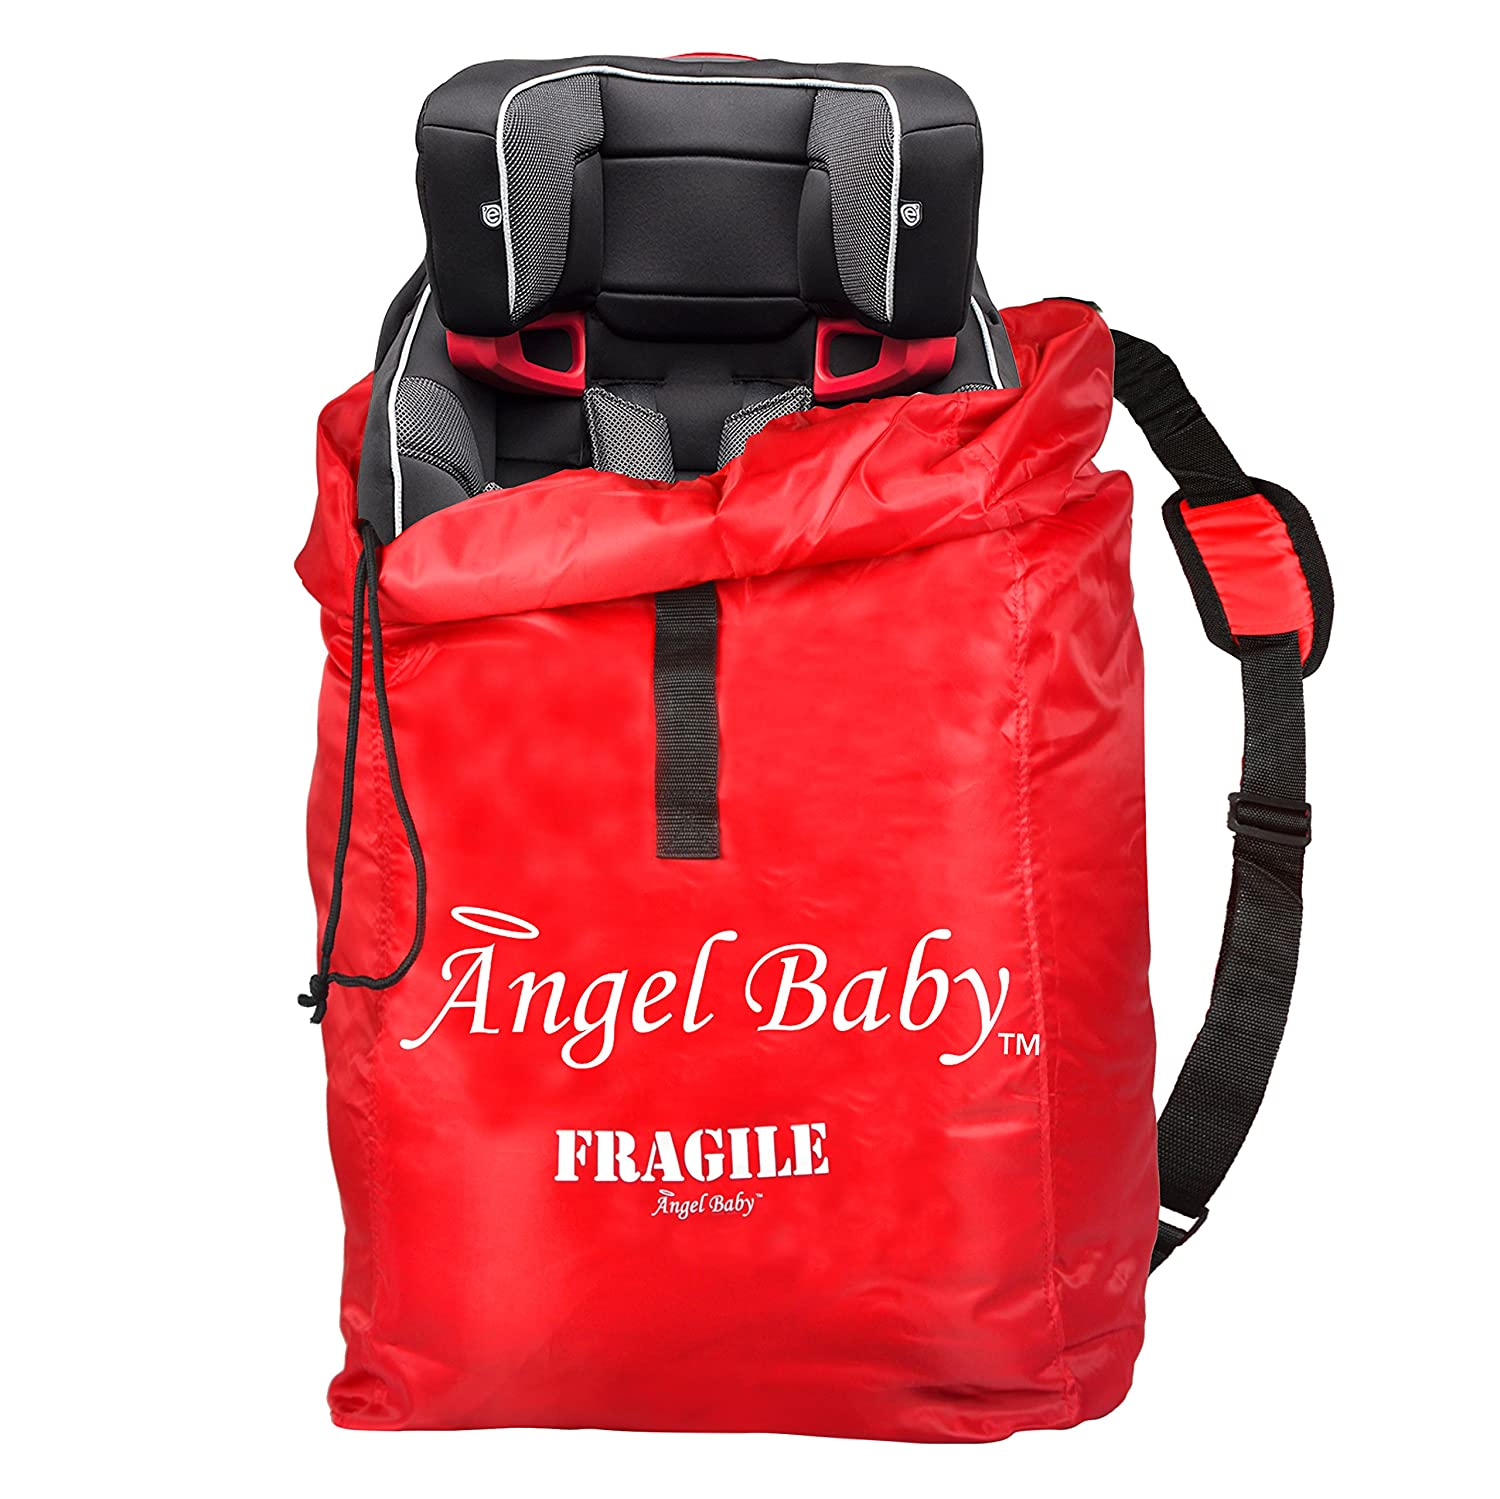 1c0a41798dab Angel Baby Car Seat Travel Bag for Air Travel: Carseat Bag for Gate Check,  Red